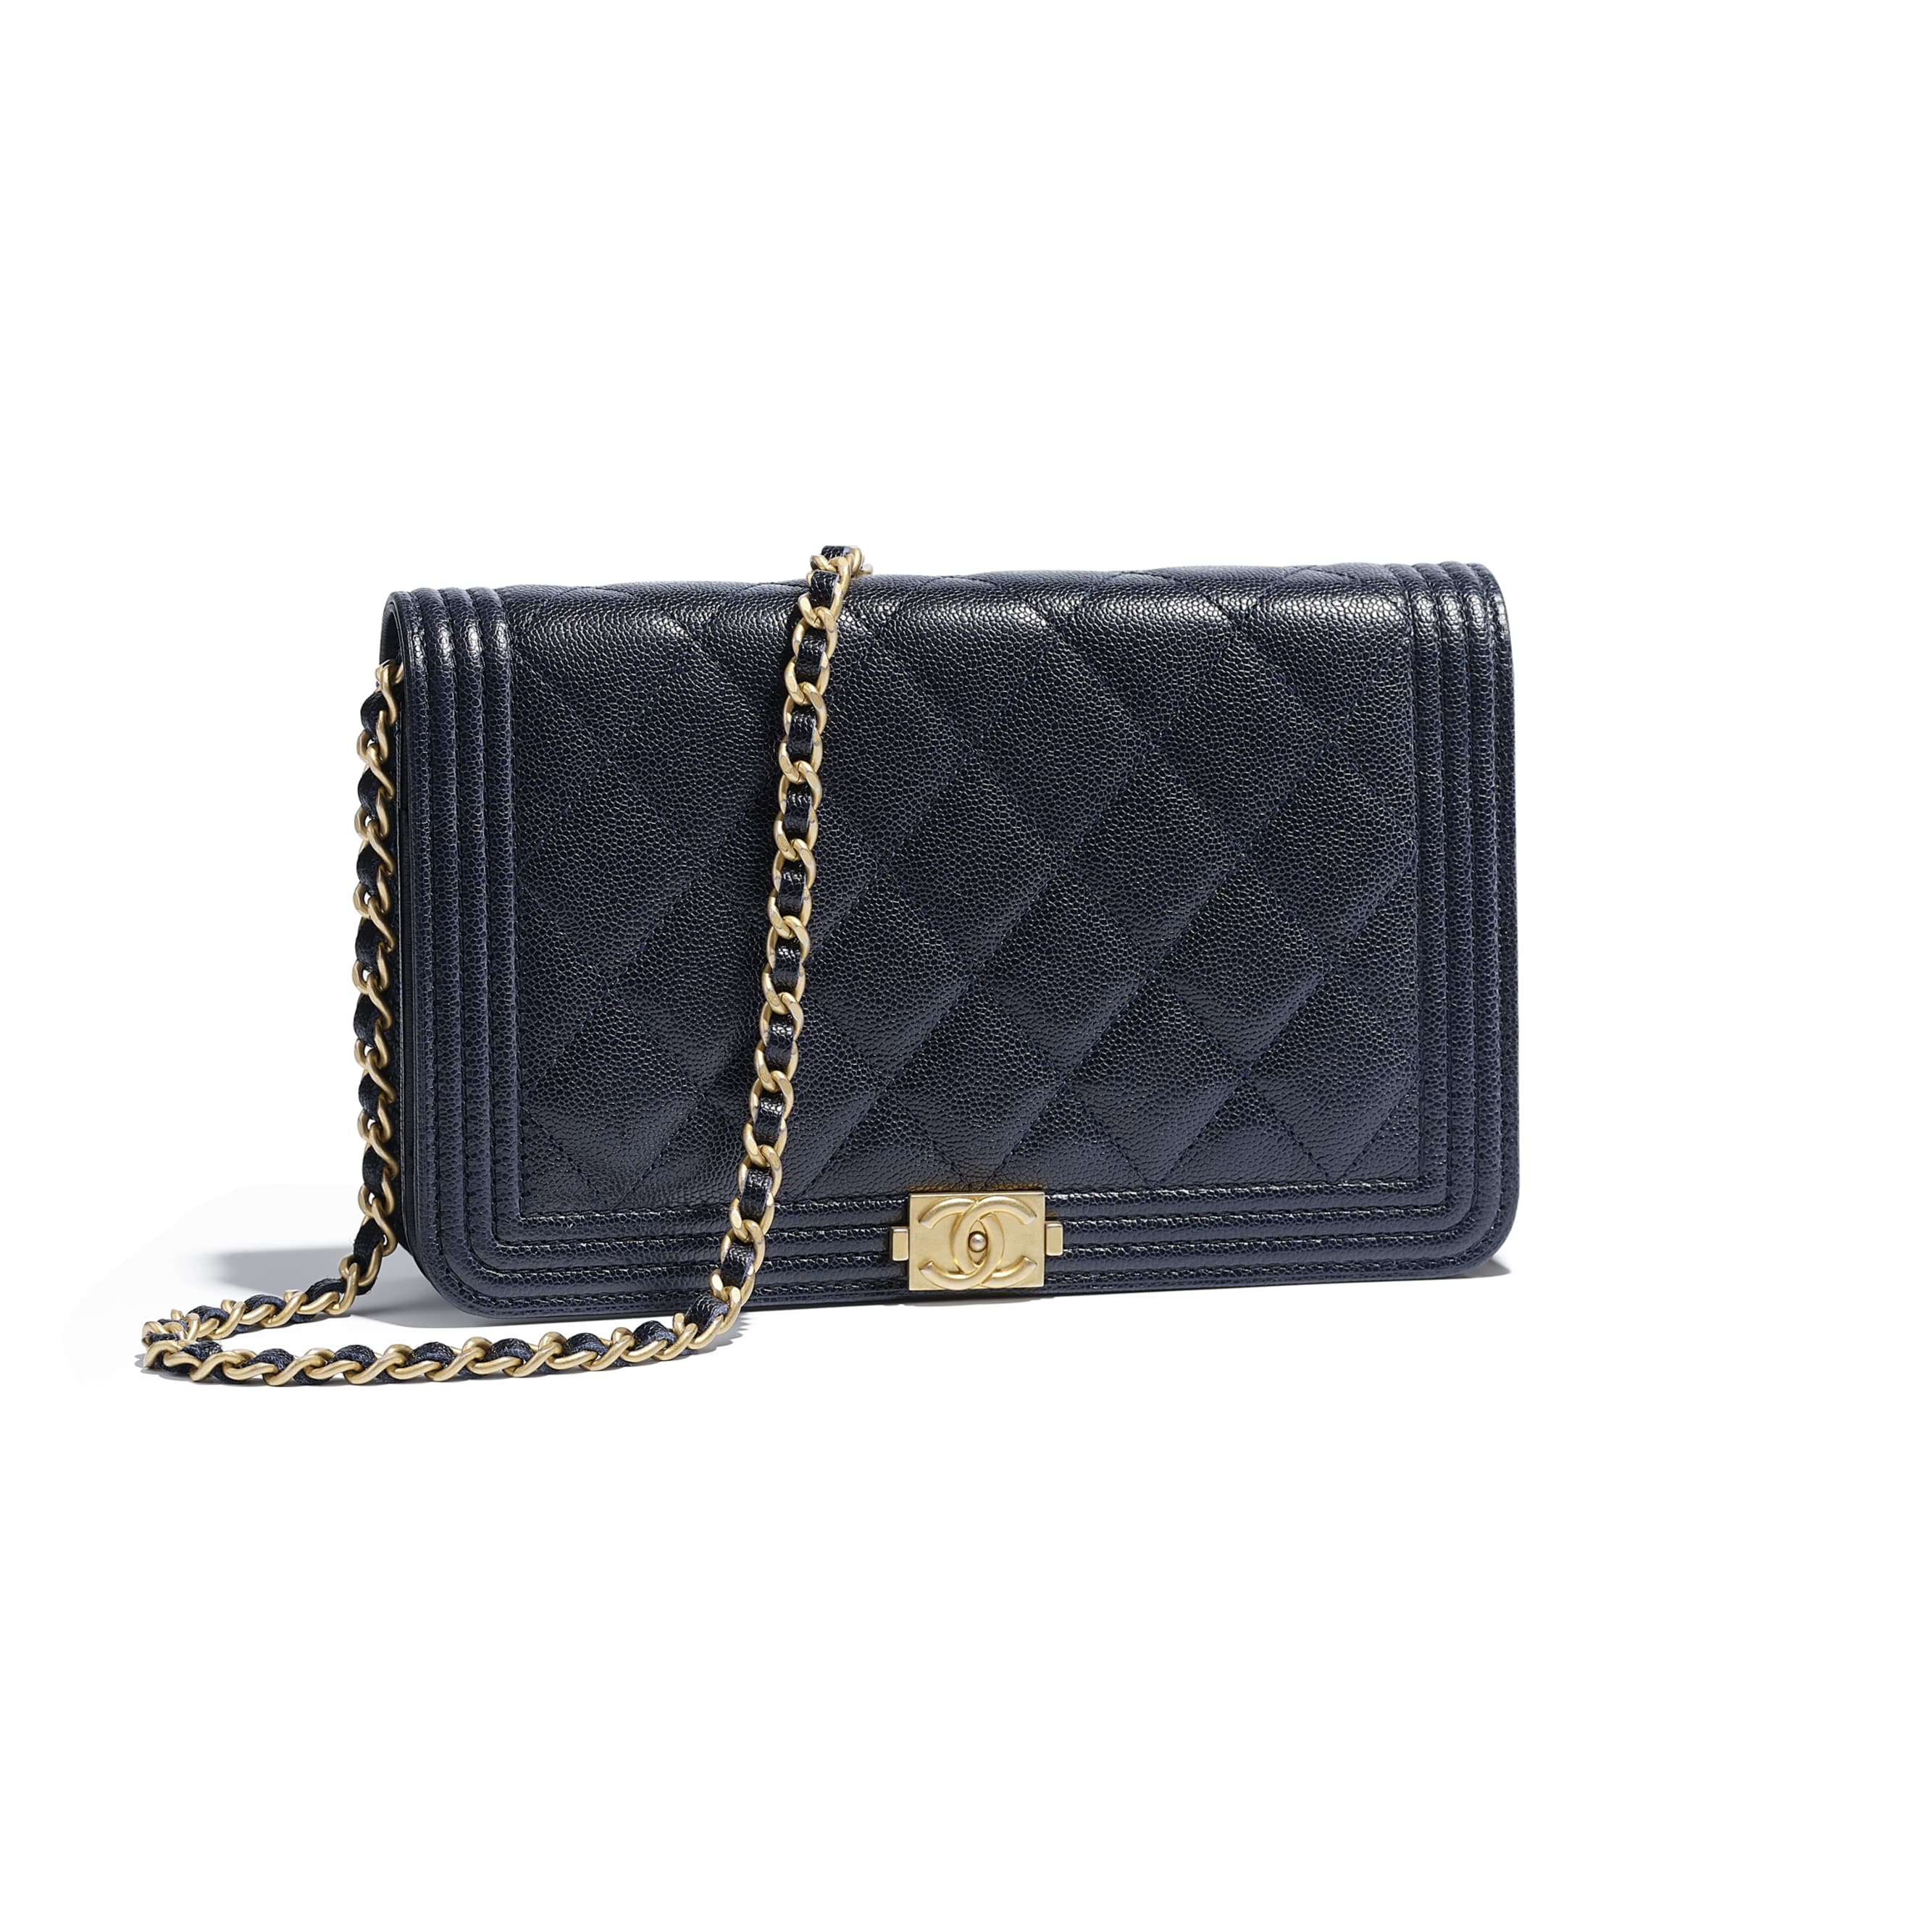 d63f3907d730 Grained Calfskin & Gold-Tone Metal Navy Blue BOY CHANEL Wallet on Chain |  CHANEL